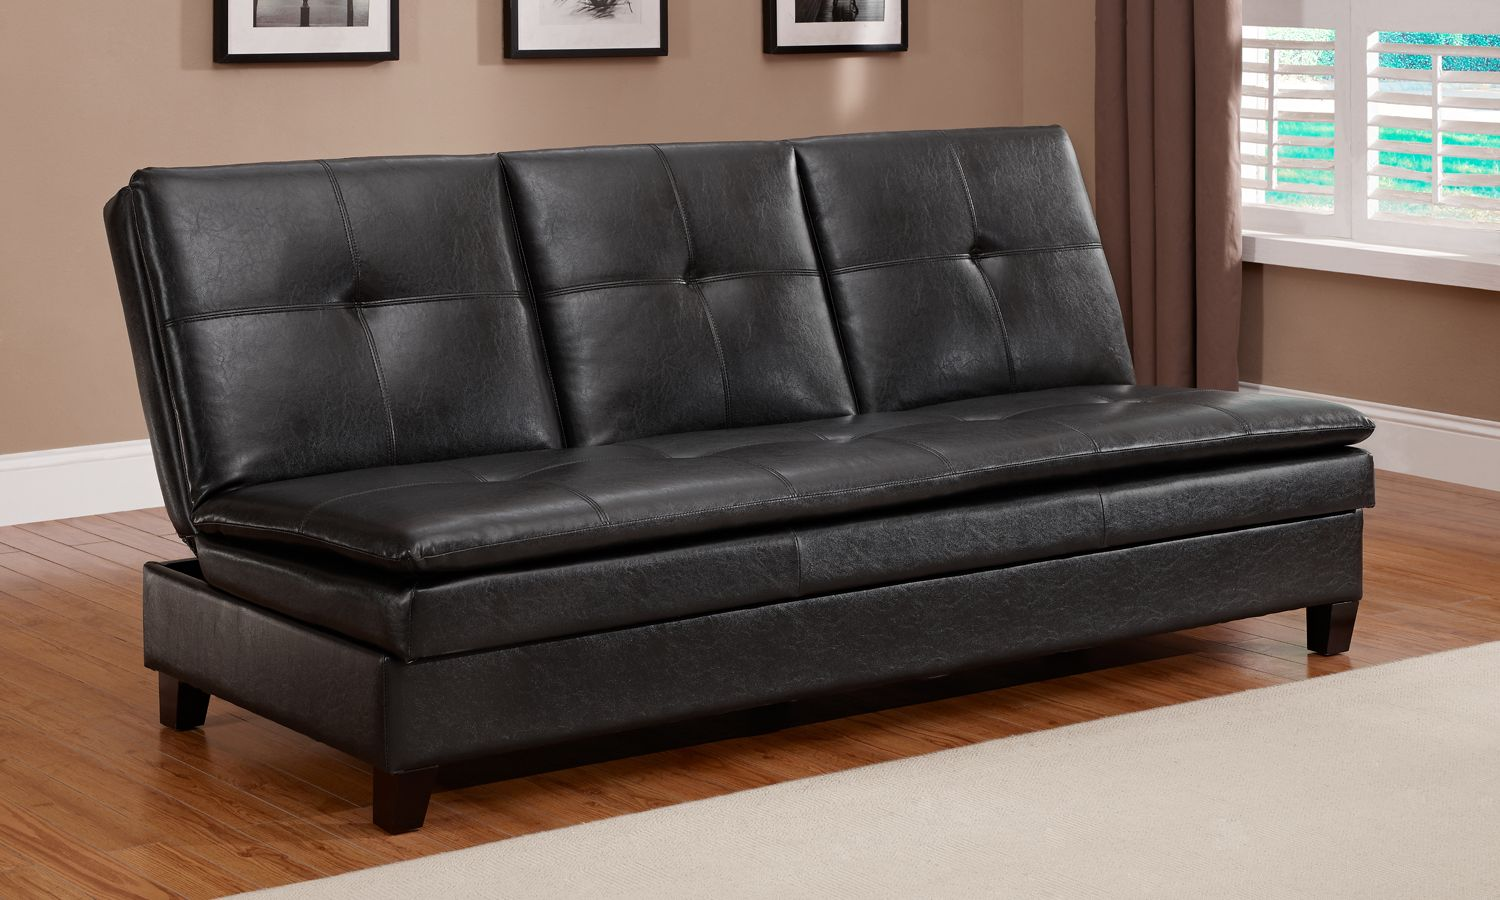 kmart jaclyn smith sleeper sofa reclining leather sectional futon – roselawnlutheran